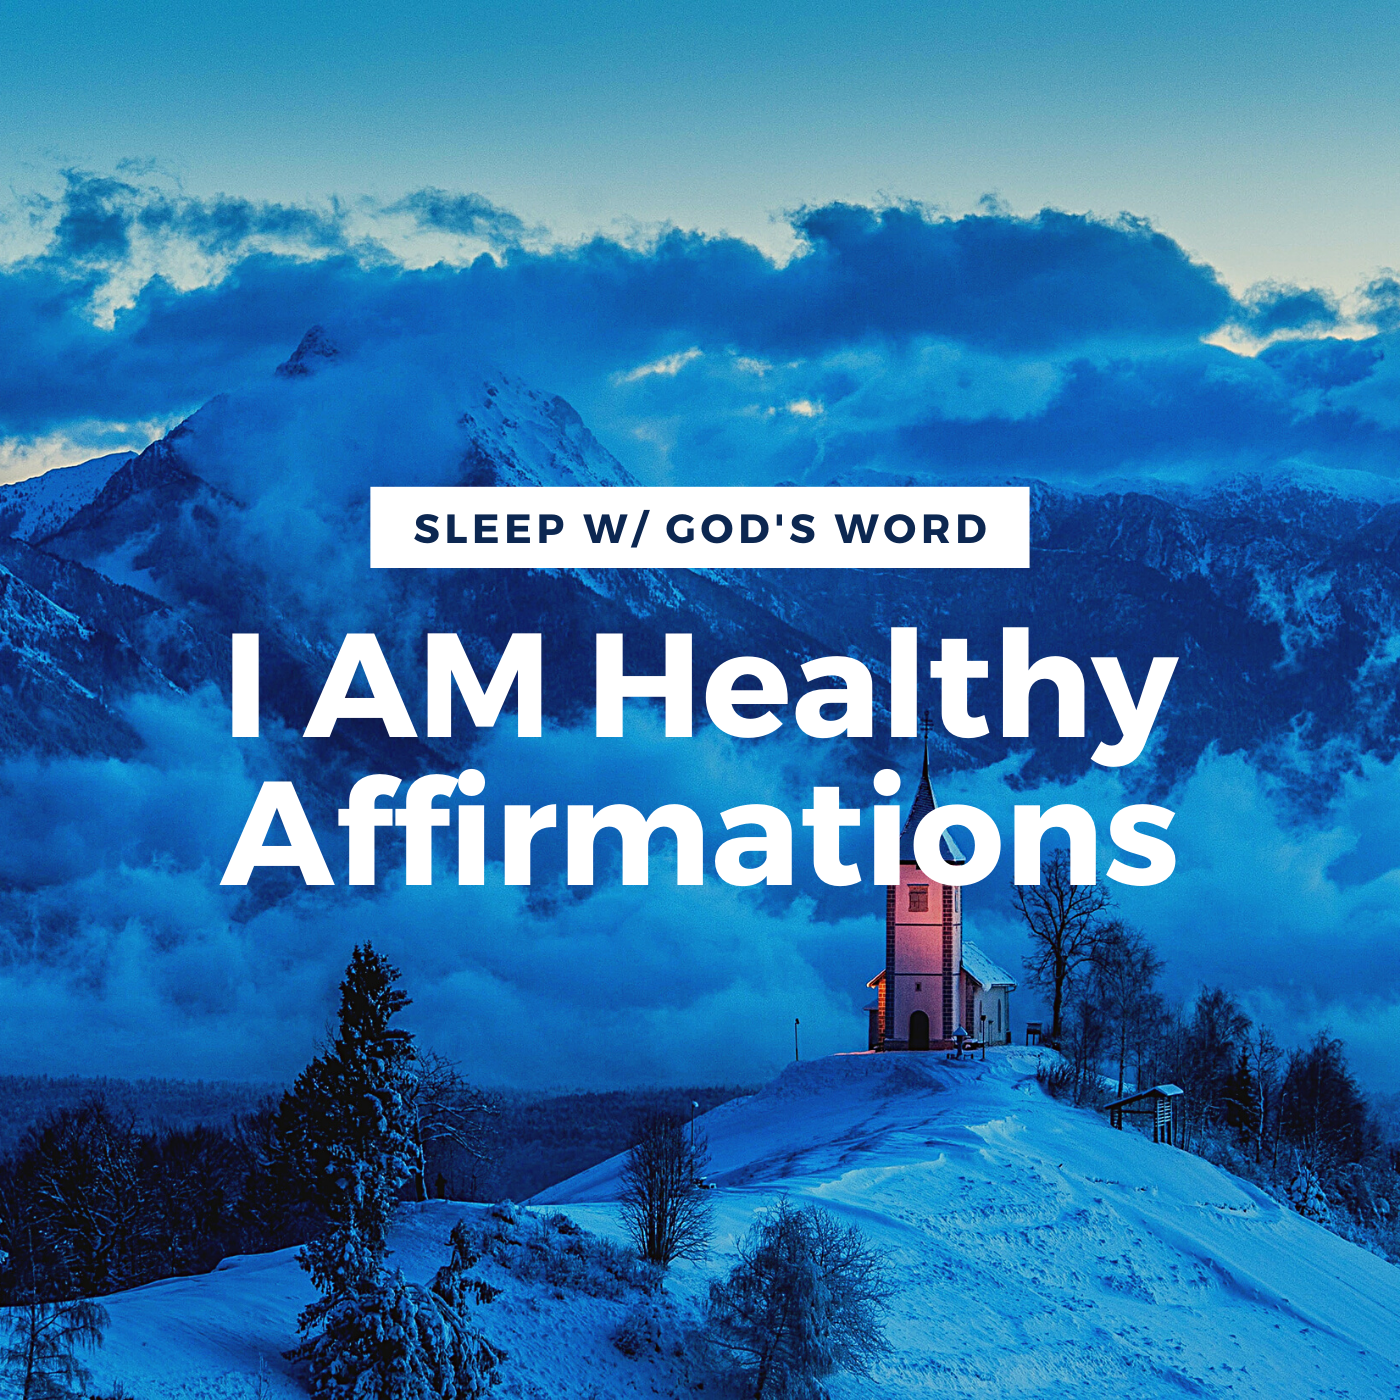 I AM Healthy Affirmations - Renew Your Mind While You Sleep